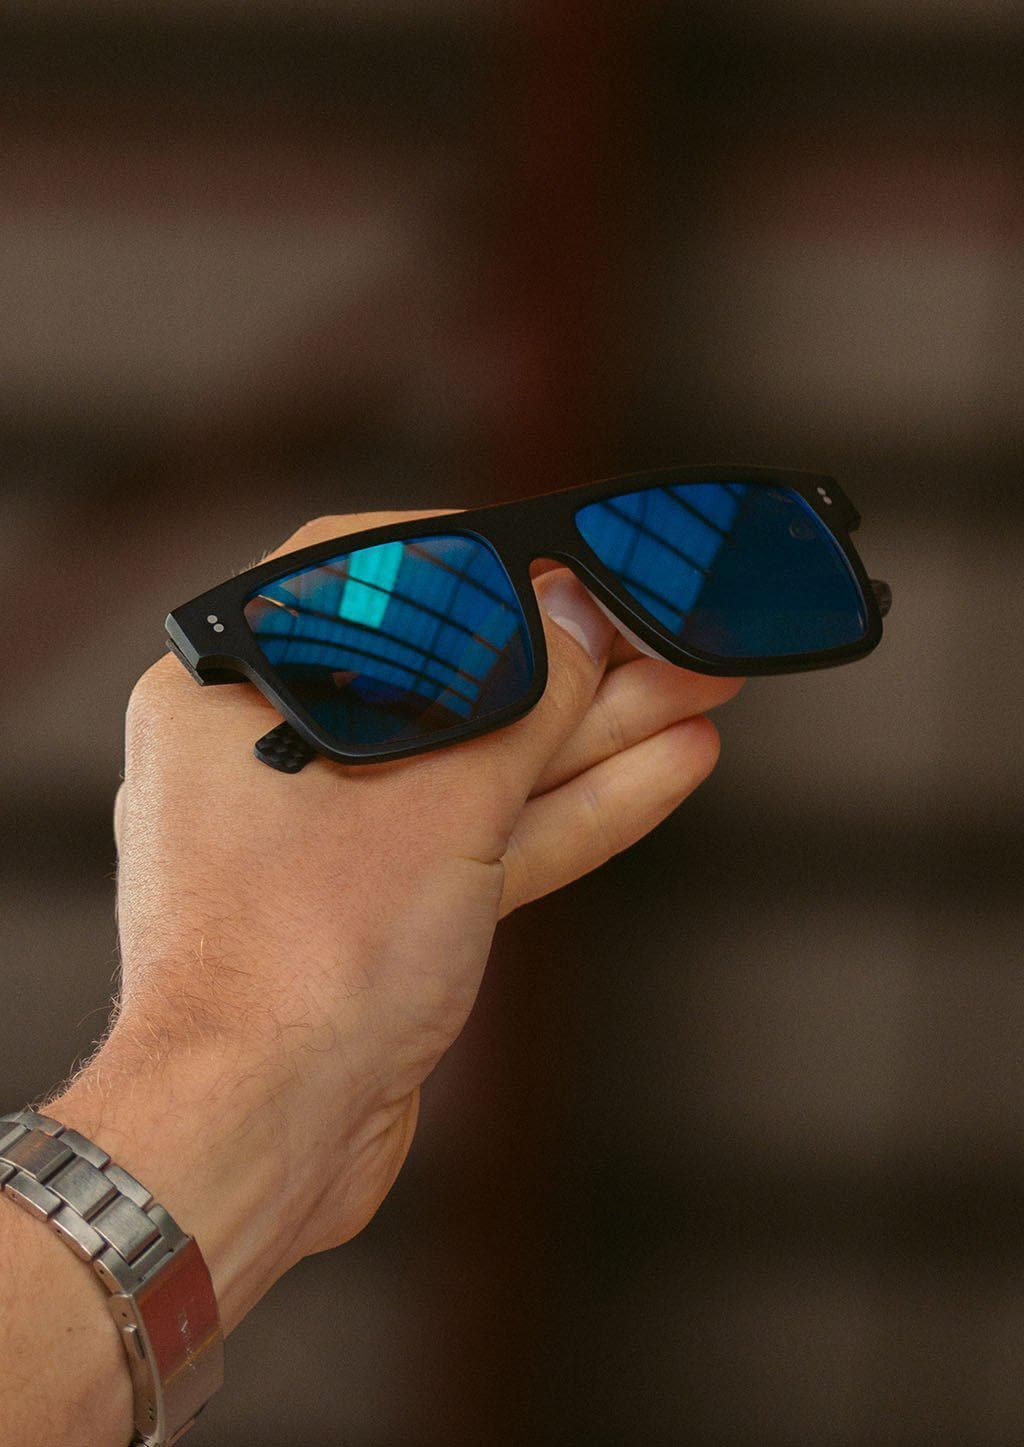 Hybrid - Cubic, carbon fiber and acetate sunglasses of the highest quality. Close up with details.